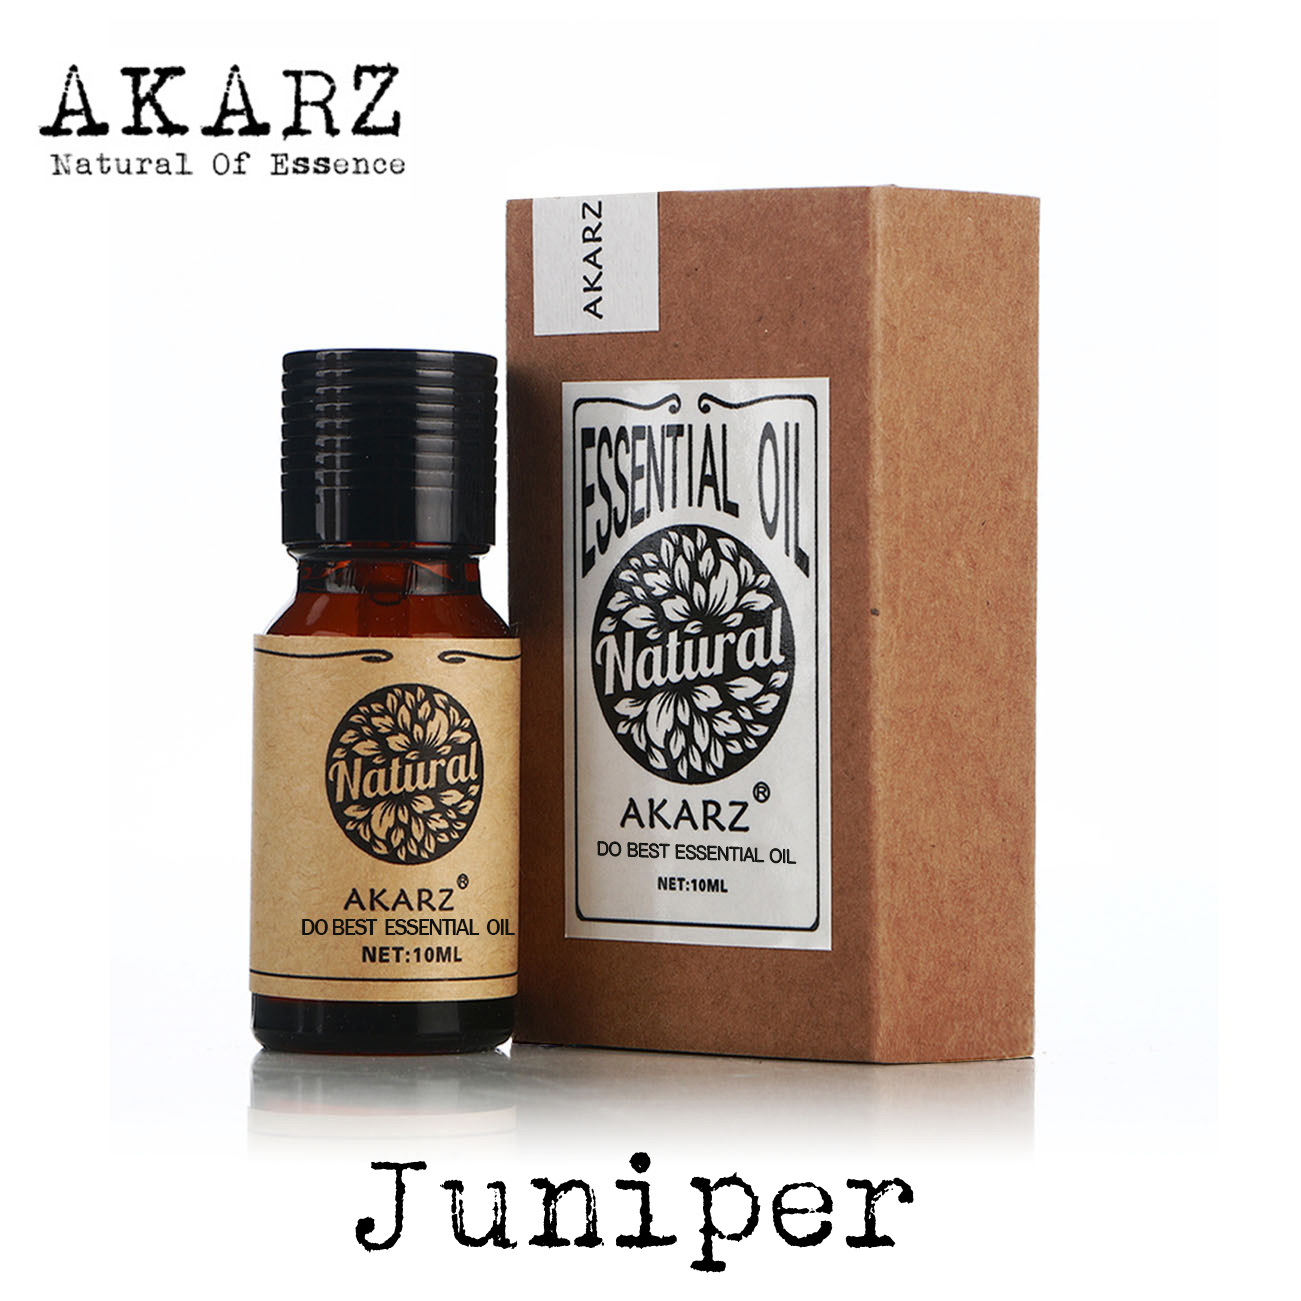 AKARZ Famous brand natural juniper Essential Oil Treatment of acne Skin inflammation and convergence pores juniper Oil image